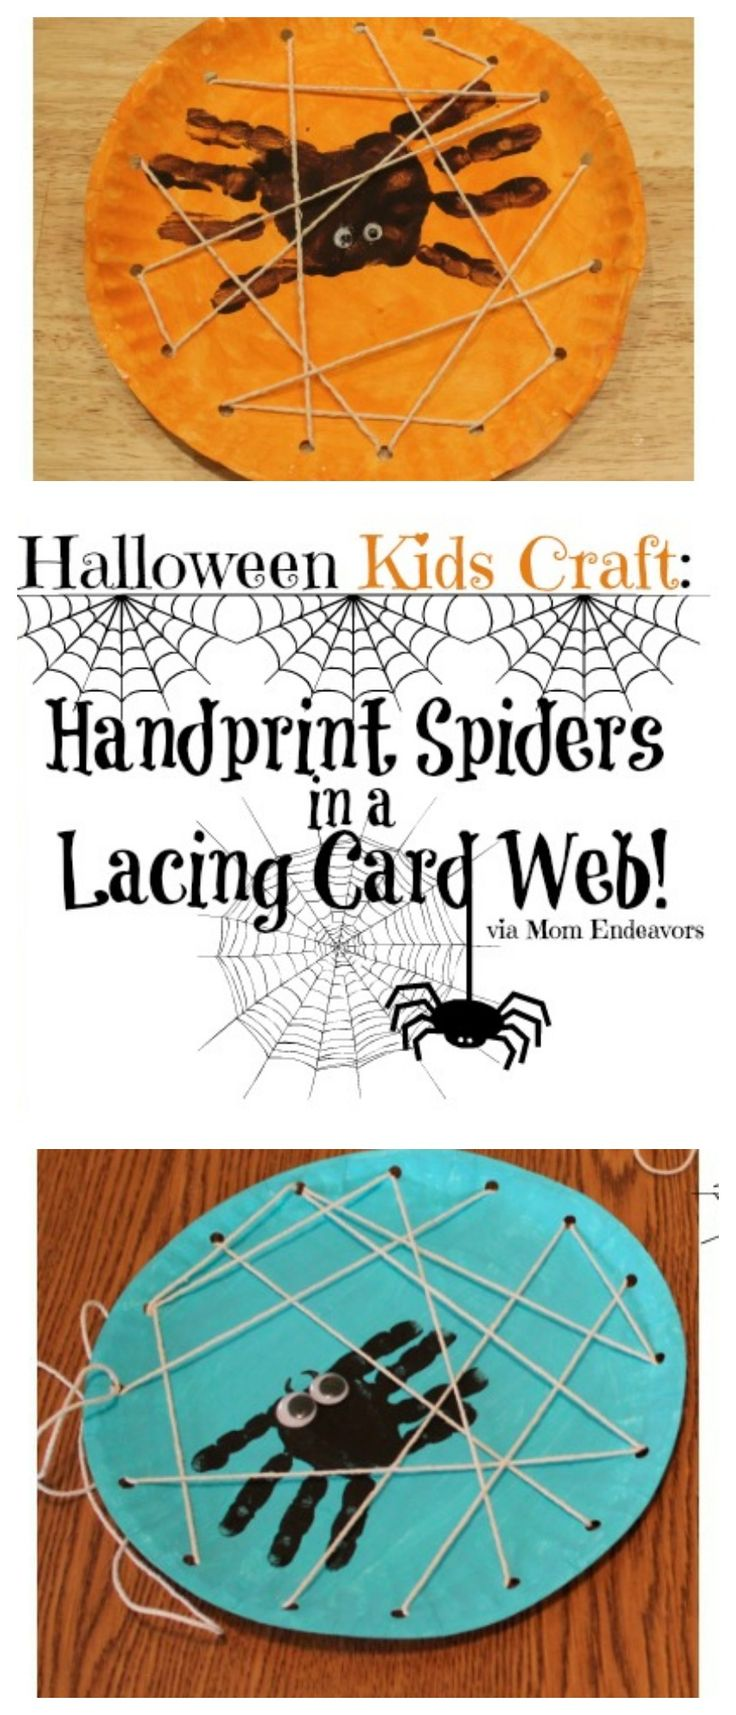 Handprint Spider + Paper Plate Spider Web Craft #ArtsAndCrafts #KidsCrafts #Crafts #DIY #Handprints #Spiders #SpiderWebs #Halloween #PaperPlates #Yarn #Weave #Woven #Animals